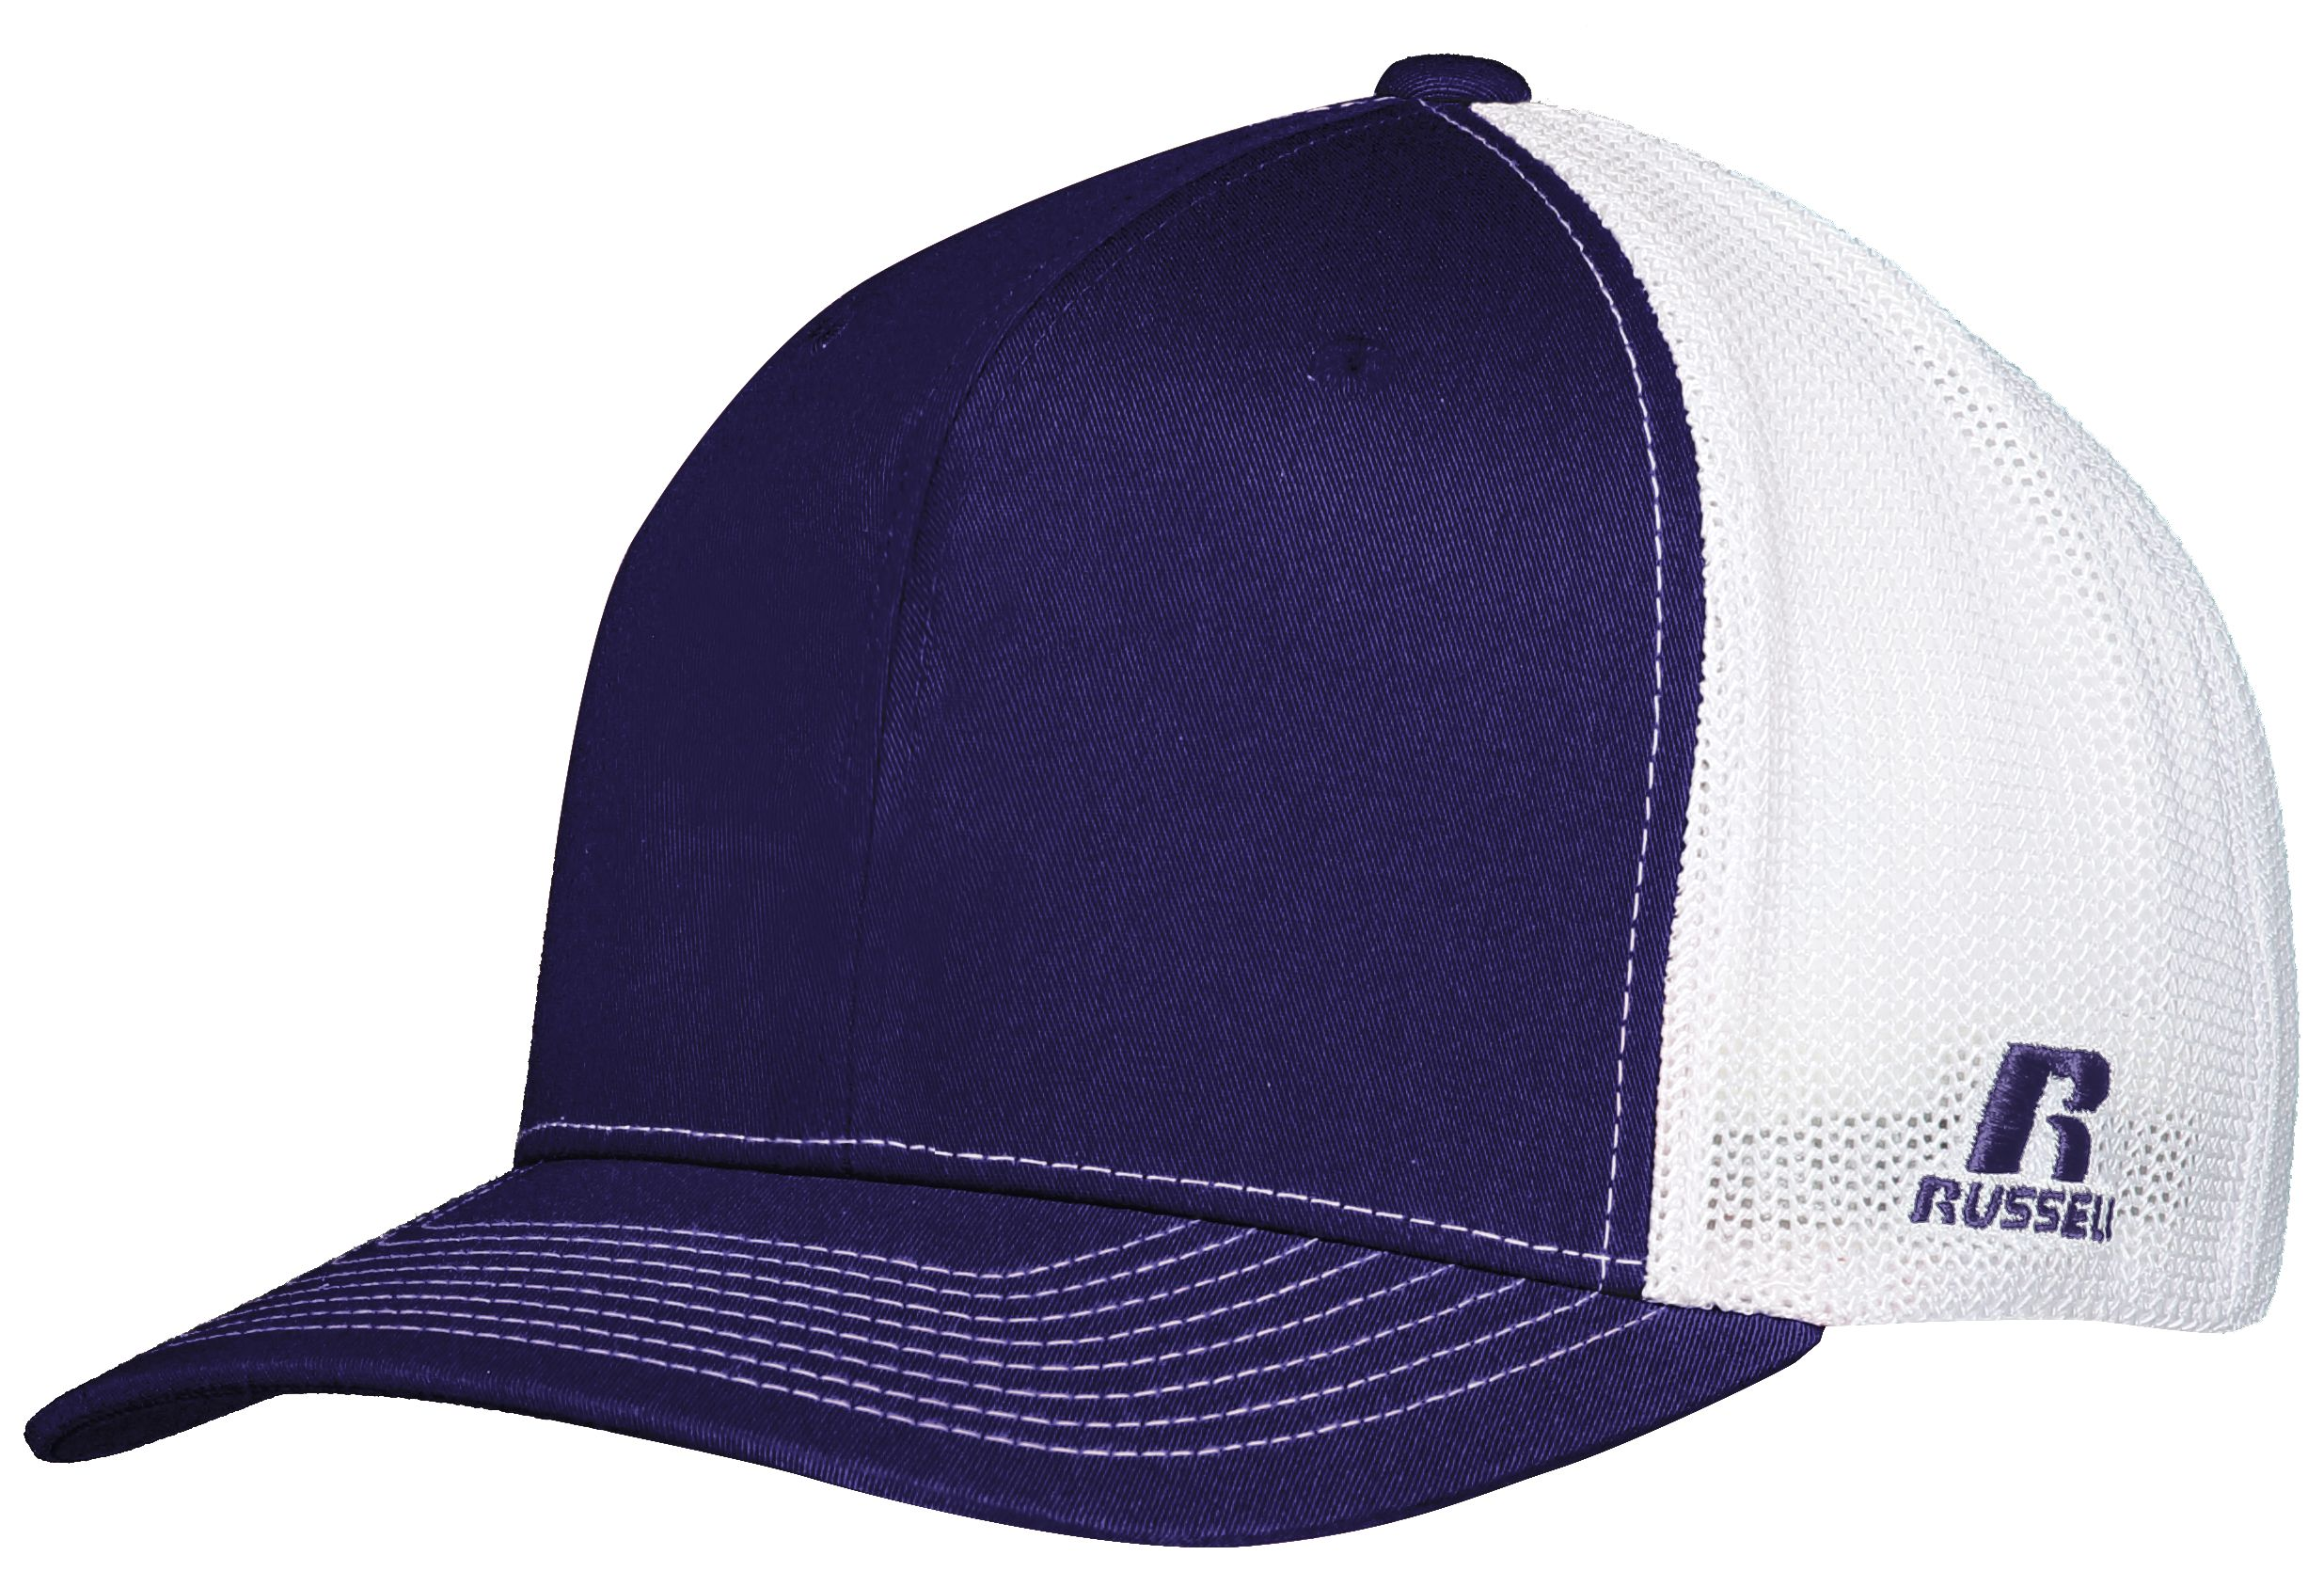 Youth Flexfit Twill Mesh Cap - Purple/white